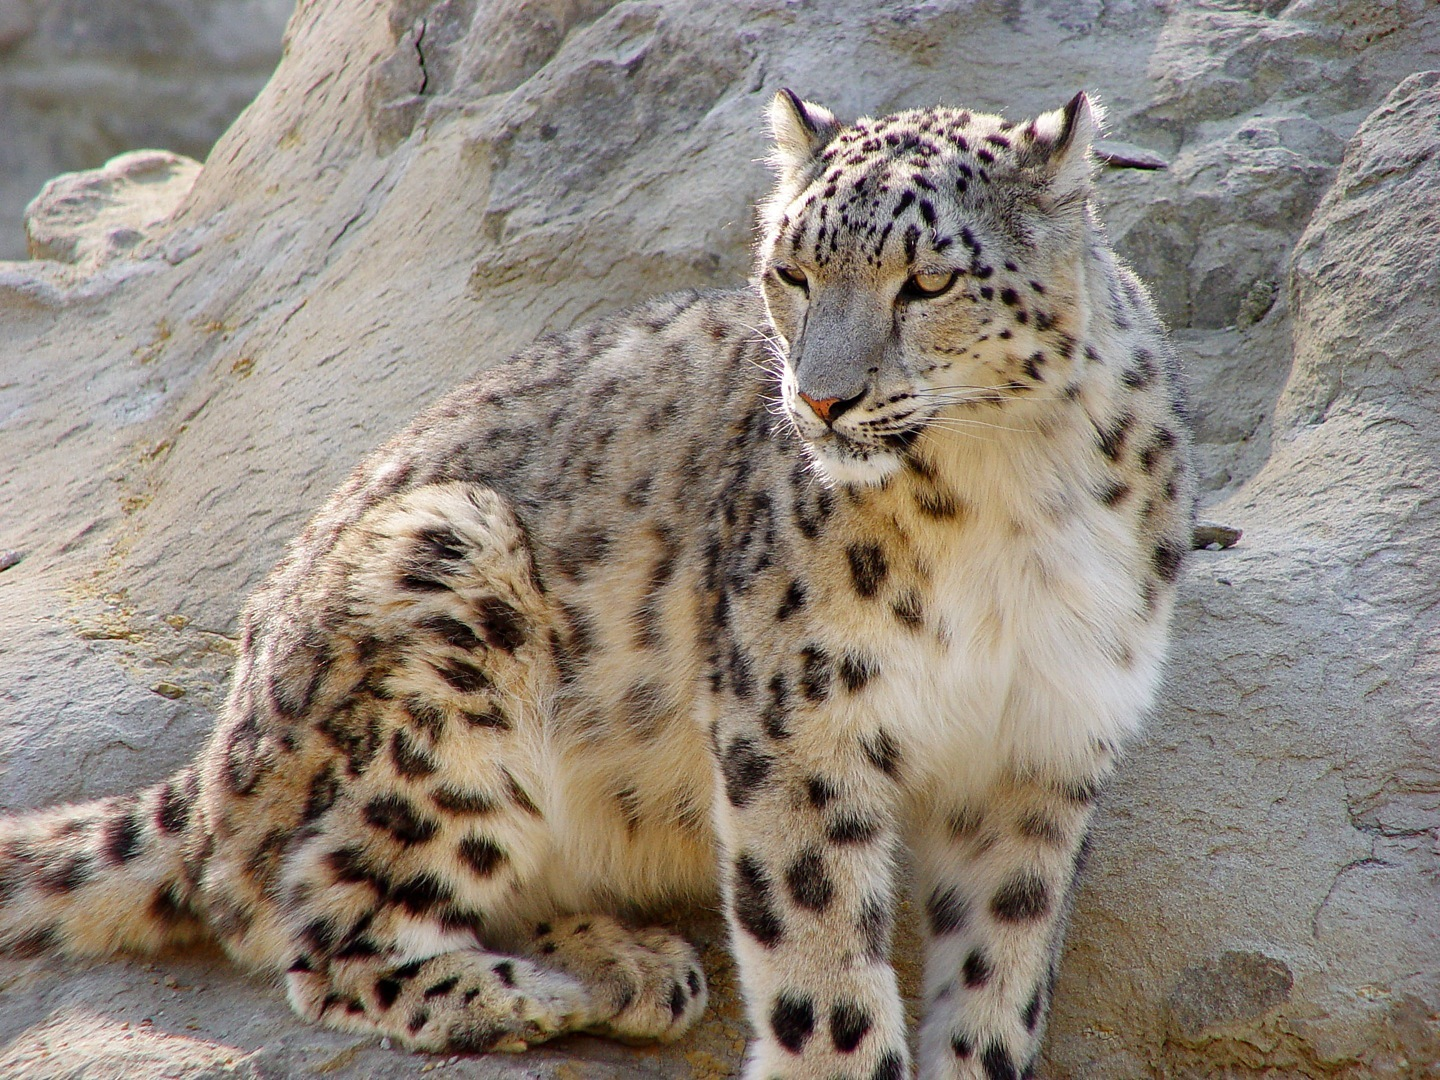 the snow leopard Buy the snow leopard new ed by peter matthiessen (isbn: 9780099771111) from amazon's book store everyday low prices and free delivery on eligible orders.